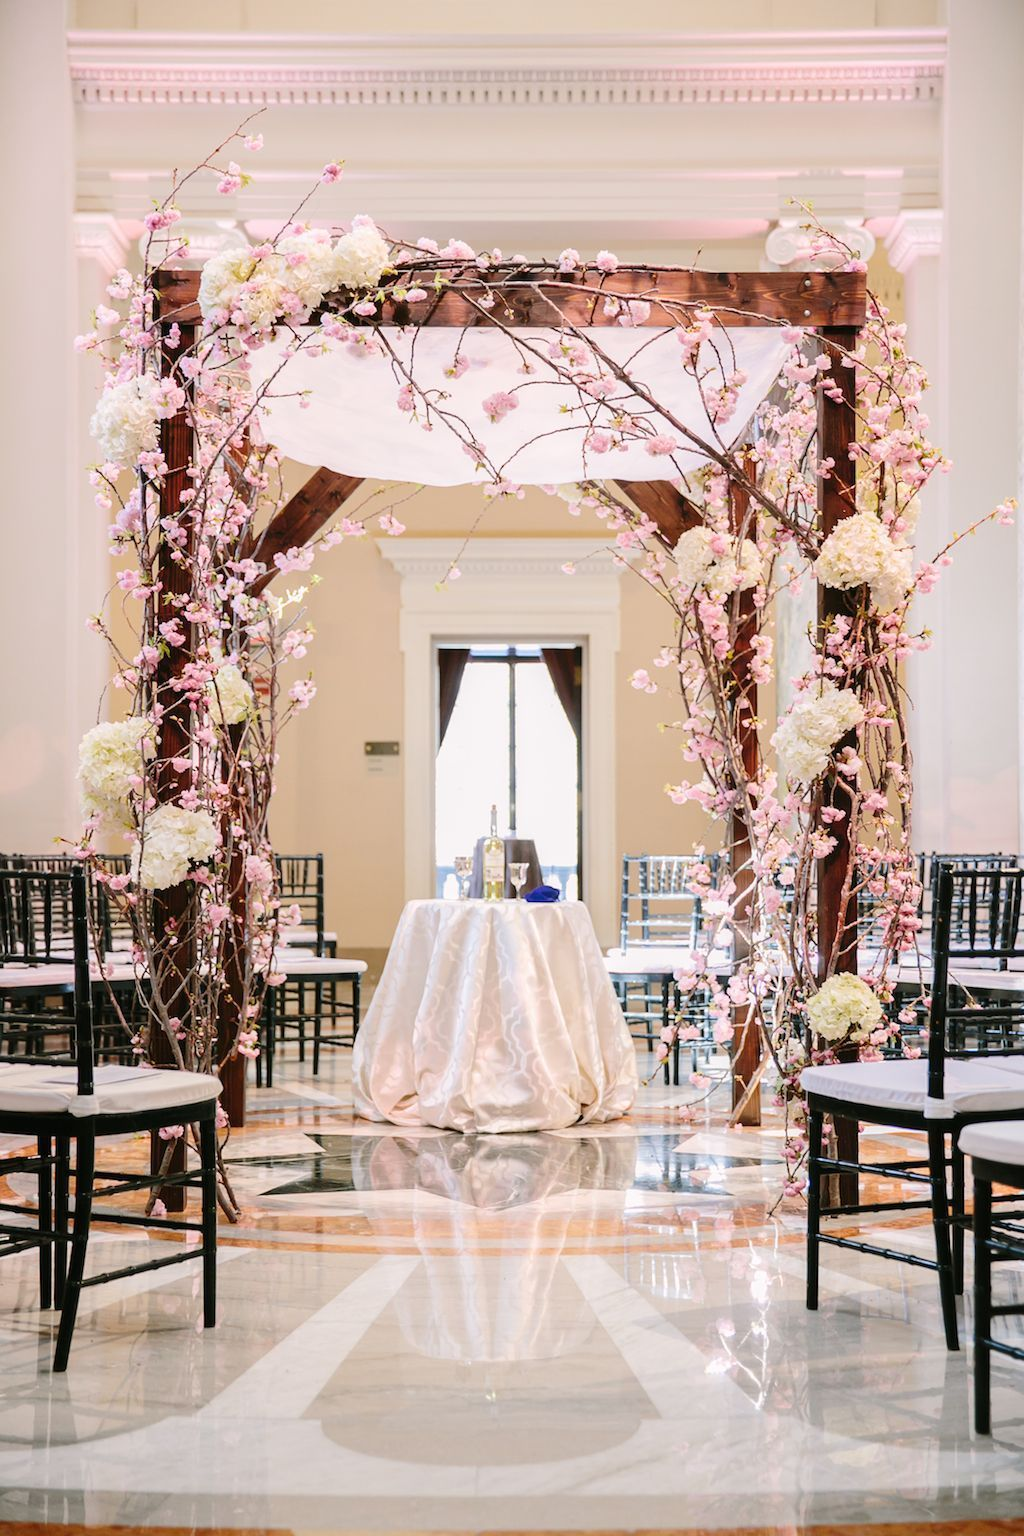 18 ideas to steal for your cherry blossom themed wedding weddings 32516cherry blossom wedding ideas dc 9 junglespirit Choice Image